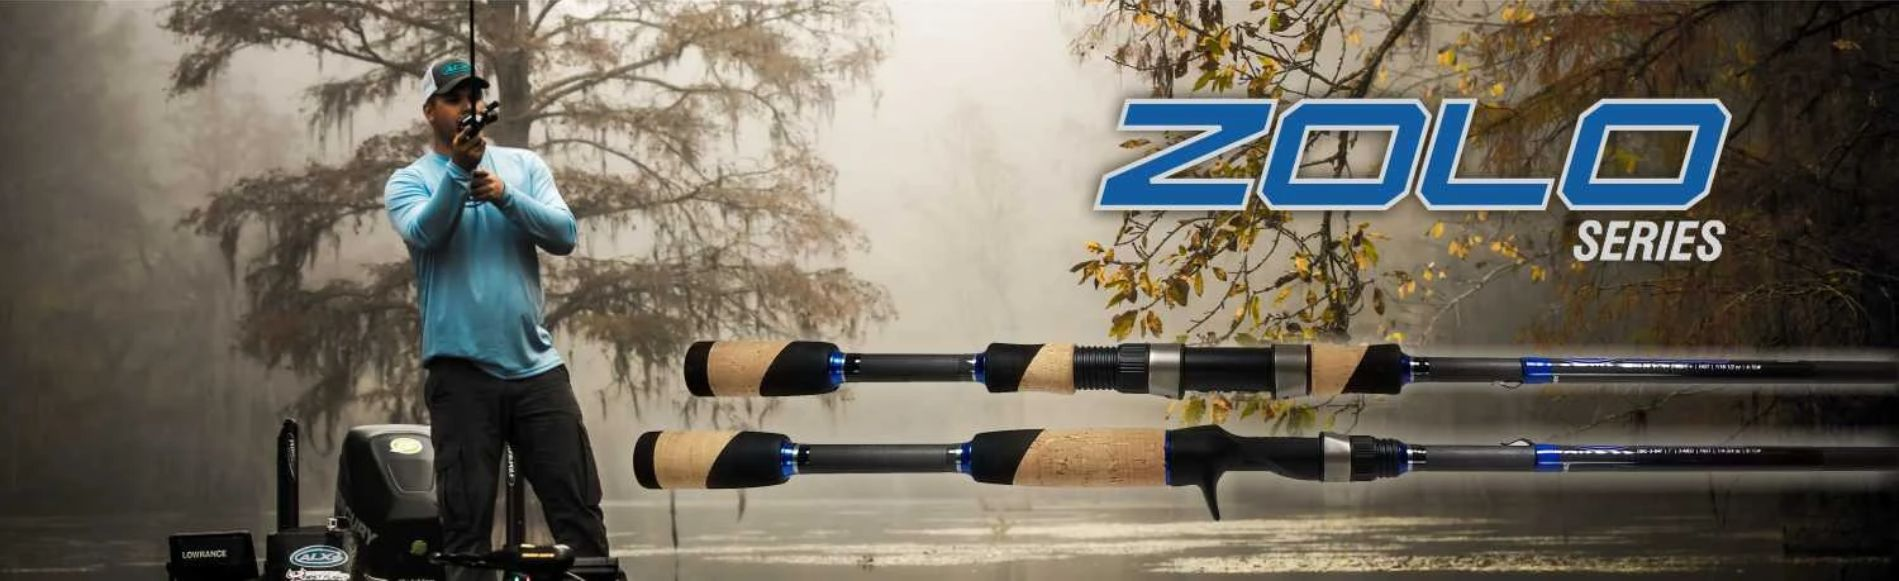 ZOLO ROD SERIES BY ALX- BANNER